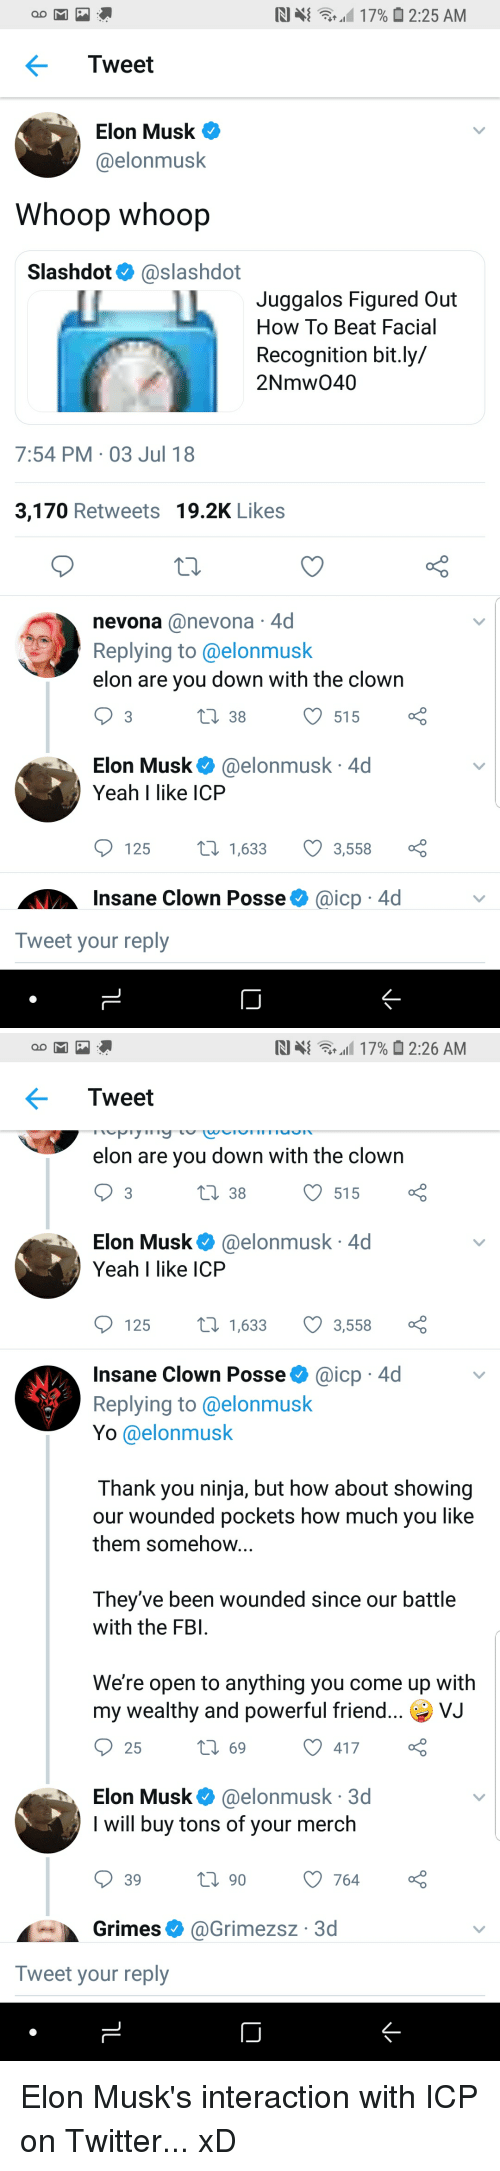 Fbi, Funny, and Twitter: Tweet  Elon Musk  @elonmusk  Whoop whoop  Slashdot@slashdot  Juggalos Figured Out  How To Beat Facial  Recognition bit.ly/  2Nmw040  7:54 PM-03 Jul 18  3,170 Retweets 19.2K Likes  nevona @nevona 4d  Replying to@elonmusk  elon are you down with the clown  t 38515  Elon Musk. @elonmusk. 4d  Yeah I like ICP  125 1,633 3,558 :  Insane Clown Posseaicp 4d  Tweet your reply   RI ц{ at all 17%  2:26 AM  Tweet  elon are vou down with the clown  3  38  515  Elon Musk@elonmusk 4d  Yeah I like ICP  125  t1,633 3,558  Insane Clown Posse@icp 4d  Replying to @elonmusk  Yo @elonmusk  Thank you ninja, but how about showing  our wounded pockets how much you like  them somehow  They've been wounded since our battle  with the FBI  We're open to anything you come up with  my wealthy and powerful friend  25  ИЈ  69  417  Elon Musk@elonmusk 3d  I will buy tons of your merch  39  90  Grimes@Grimezsz 3d  Tweet your reply Elon Musk's interaction with ICP on Twitter... xD